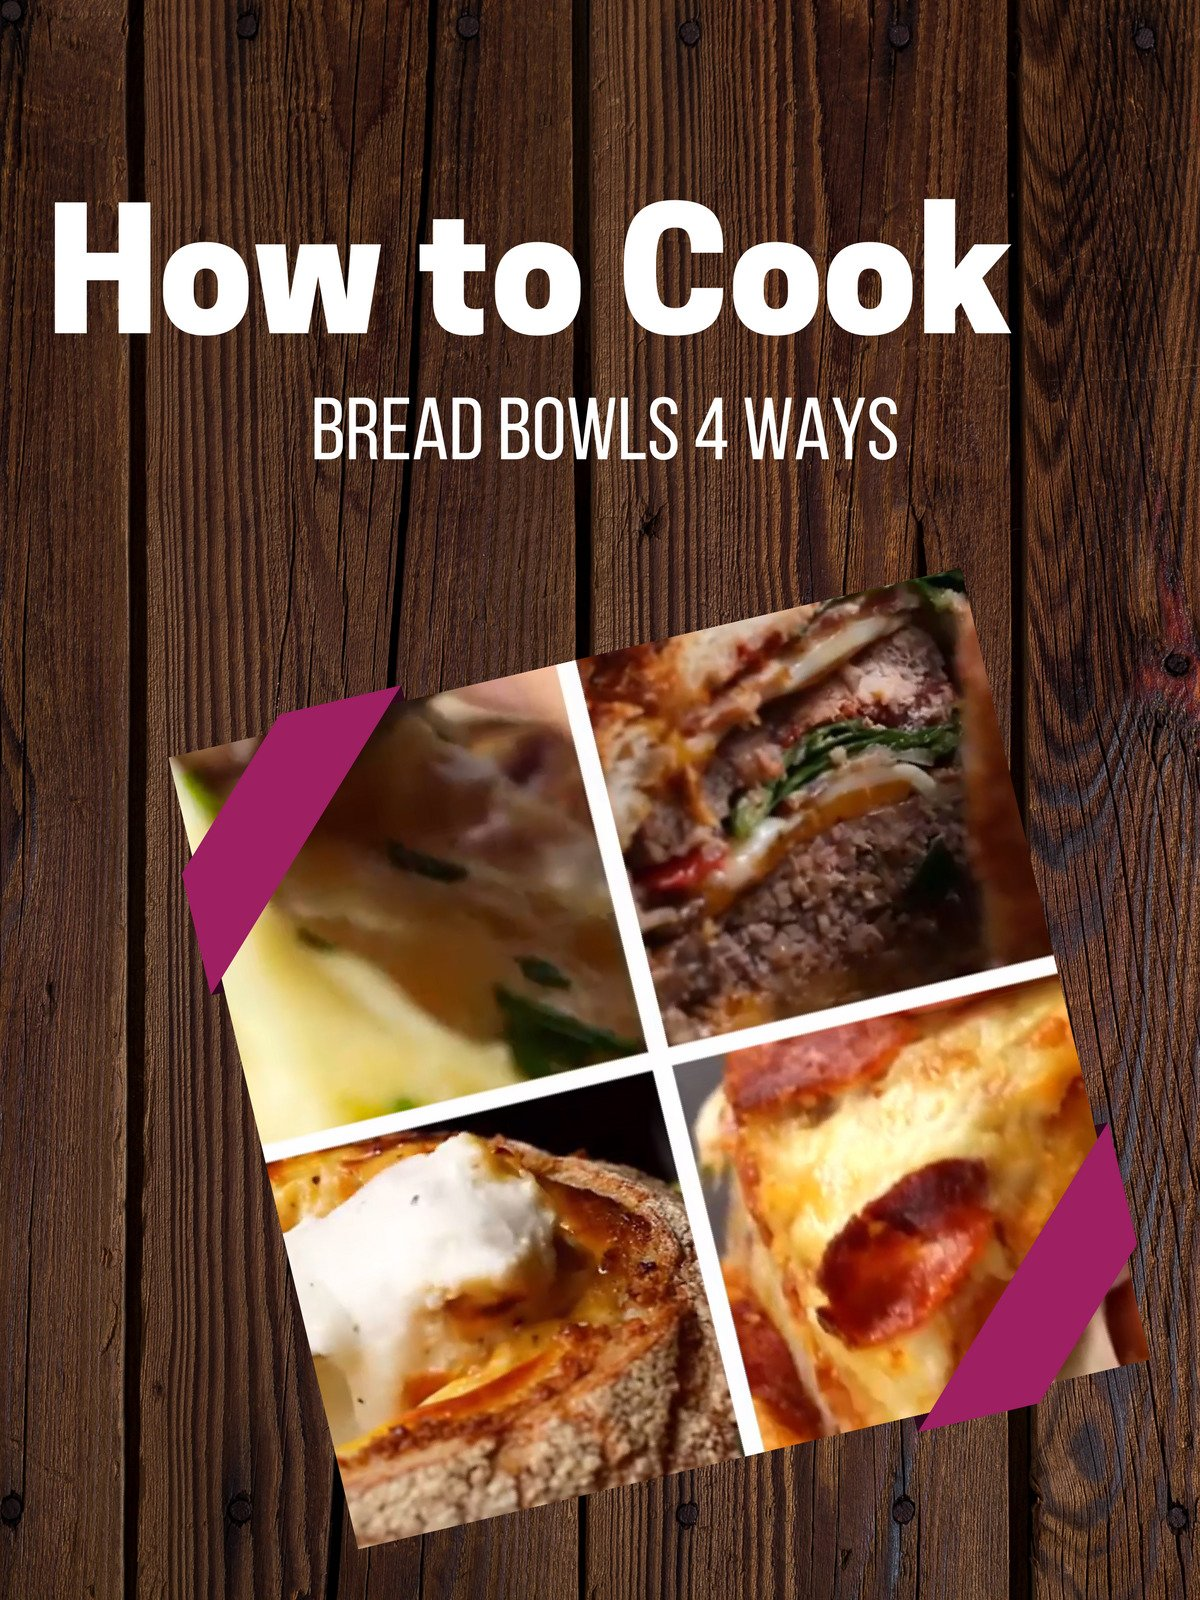 Bread Bowls 4 Ways